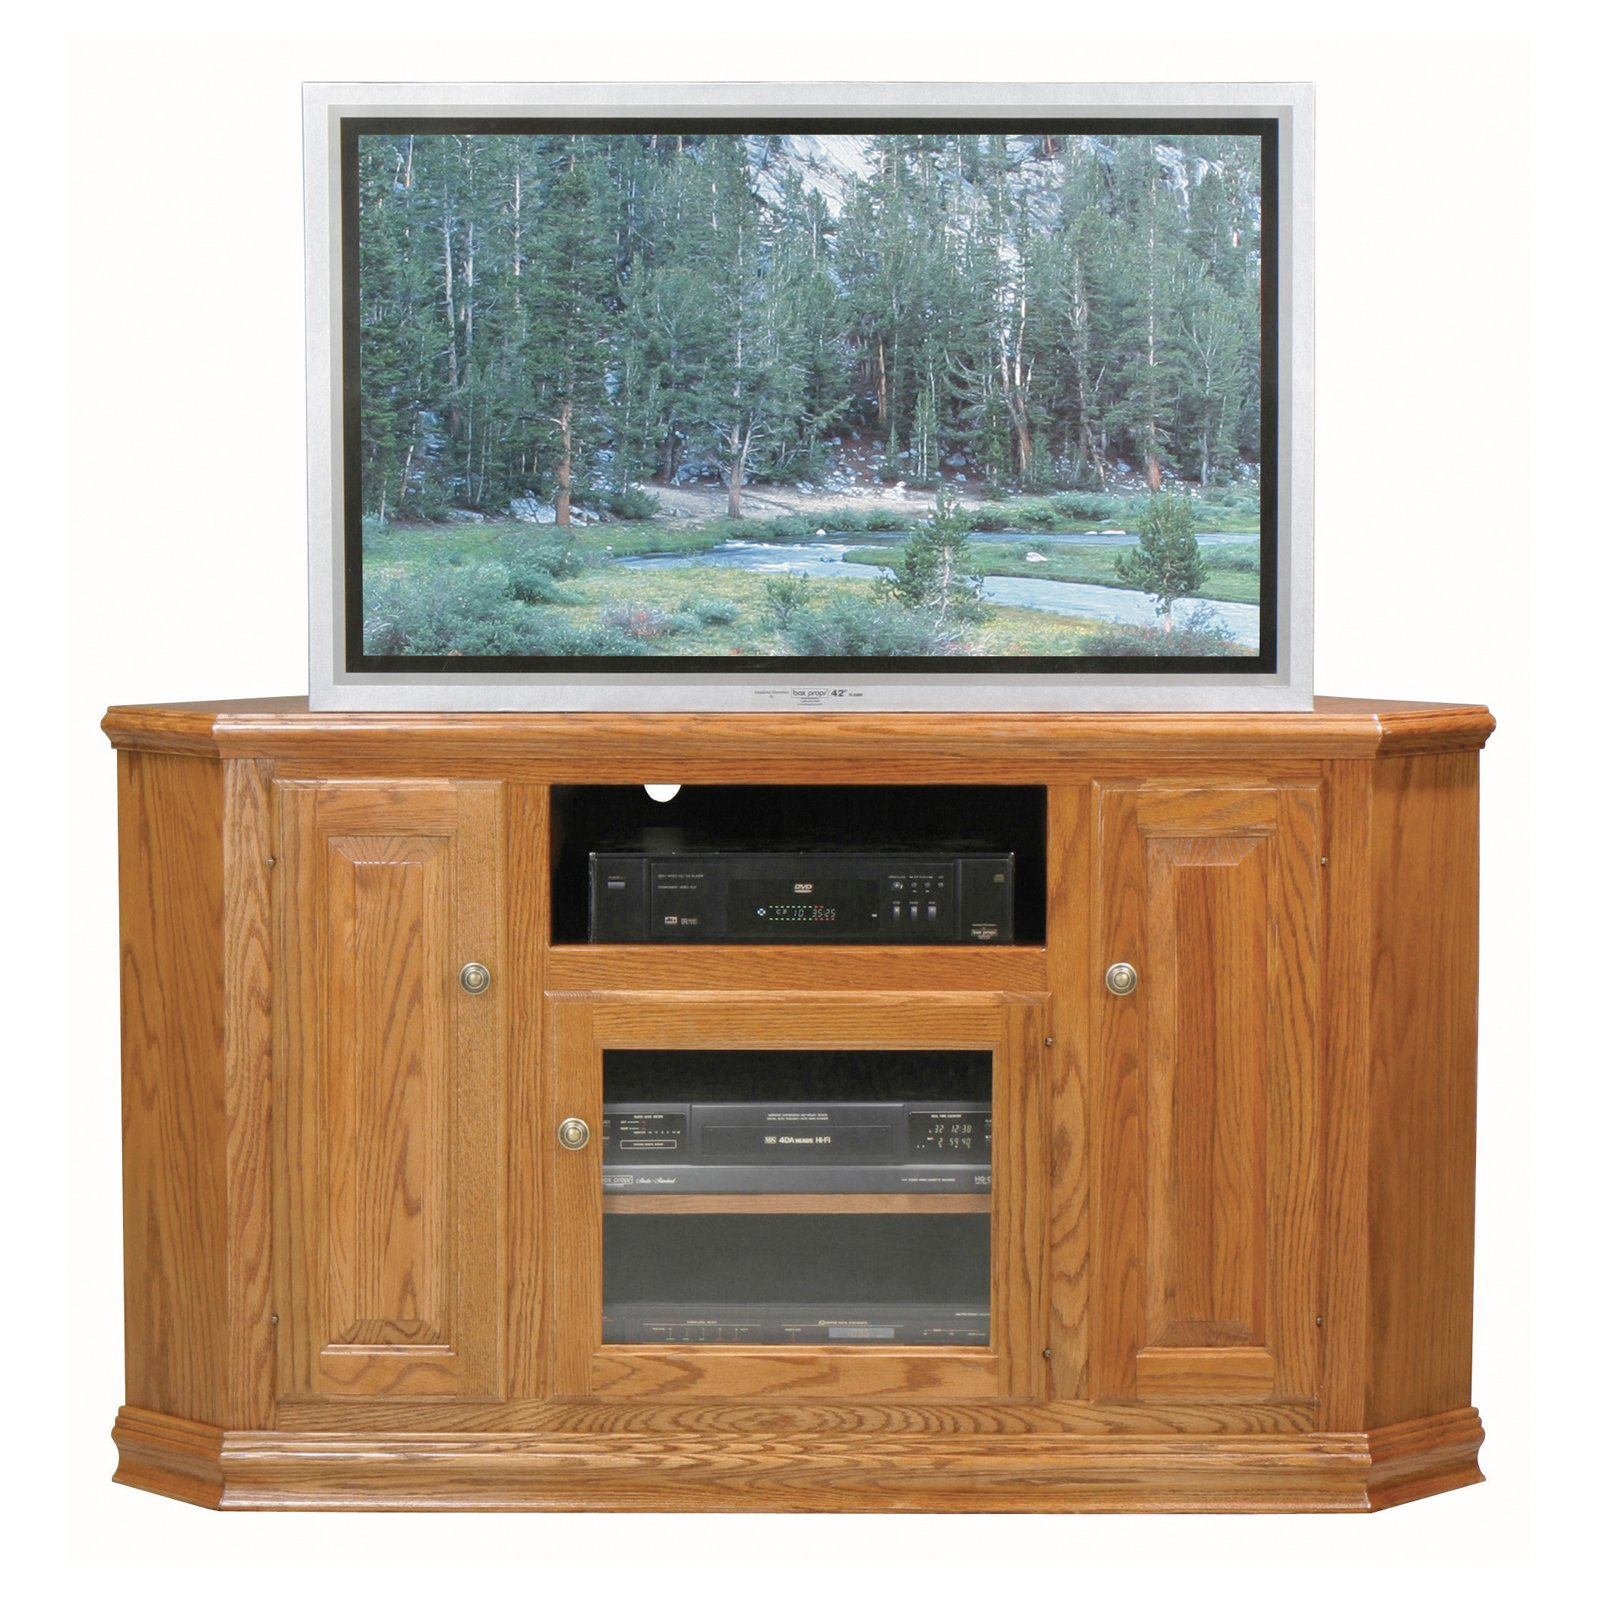 Eagle Furniture Classic Oak Customizable 57 in Tall Corner TV Stand